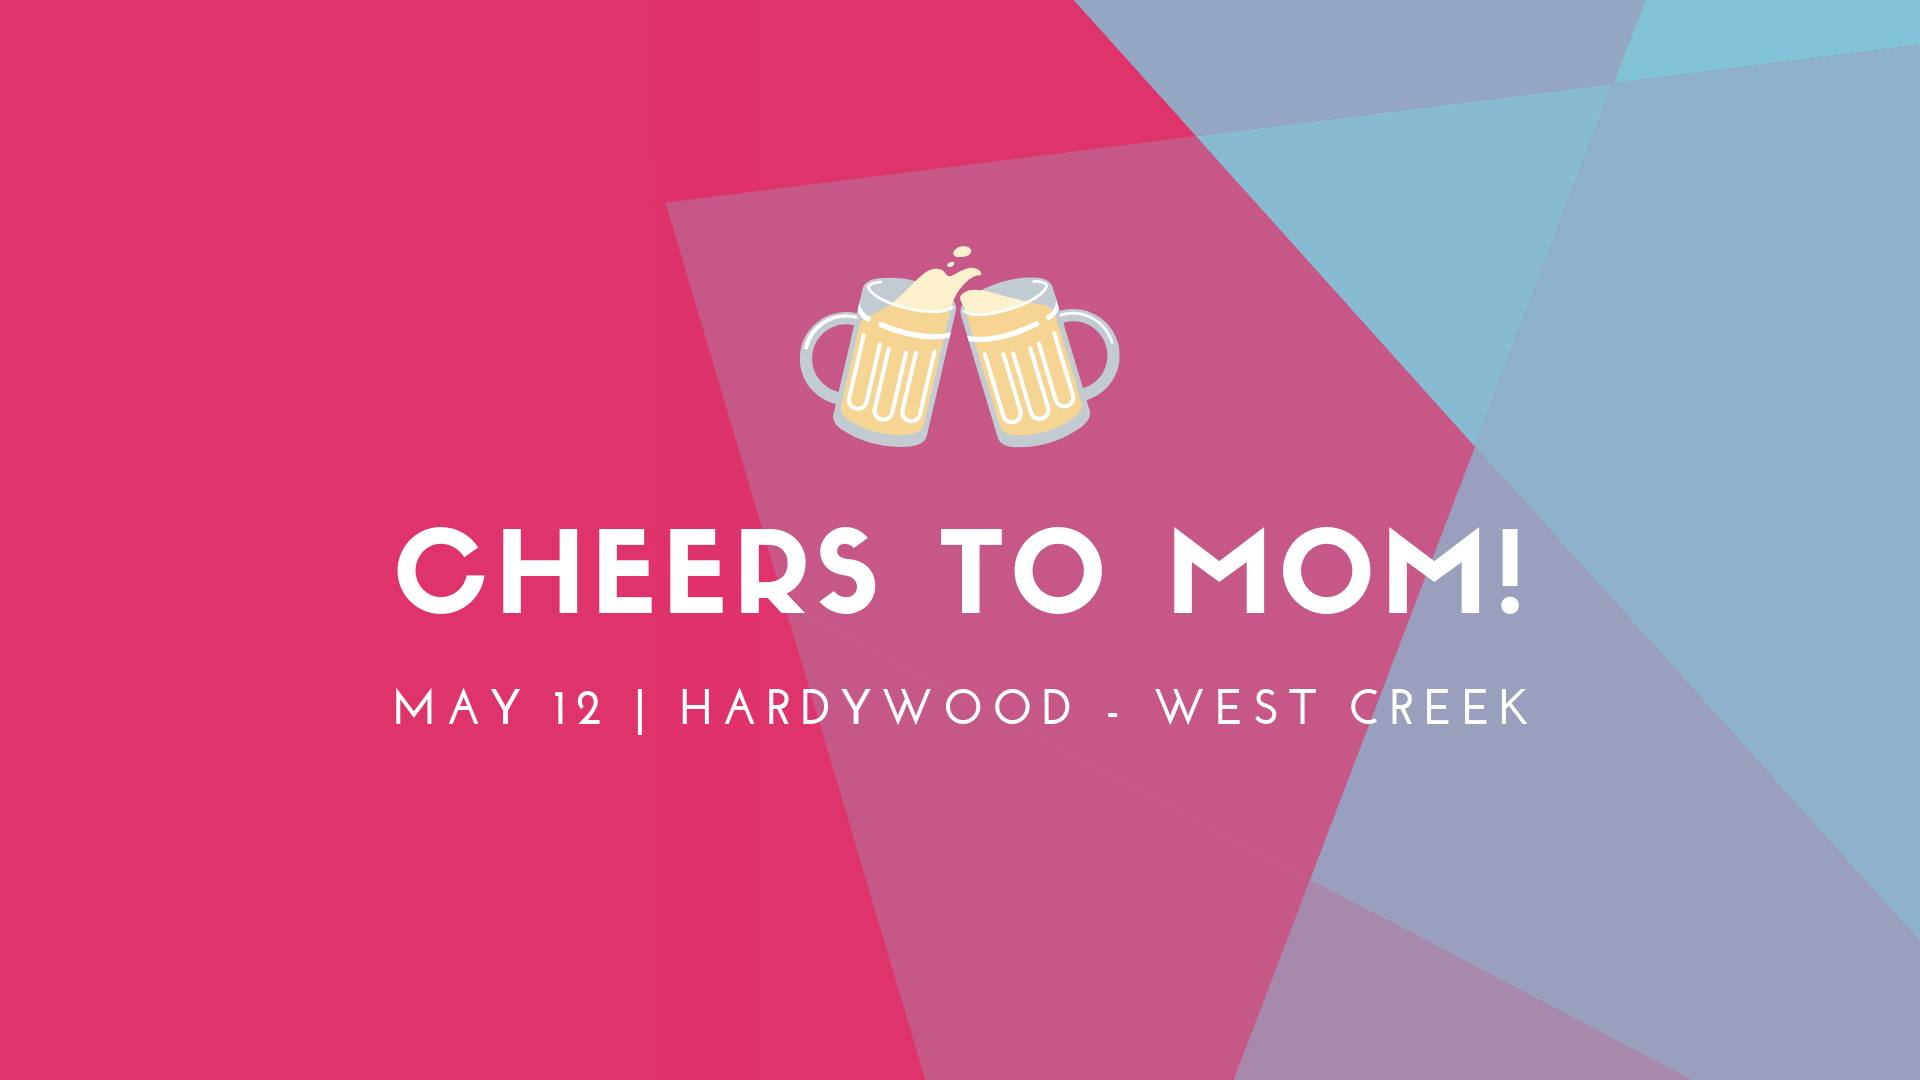 Hardywood Park Craft Brewery Cheers to Mom!